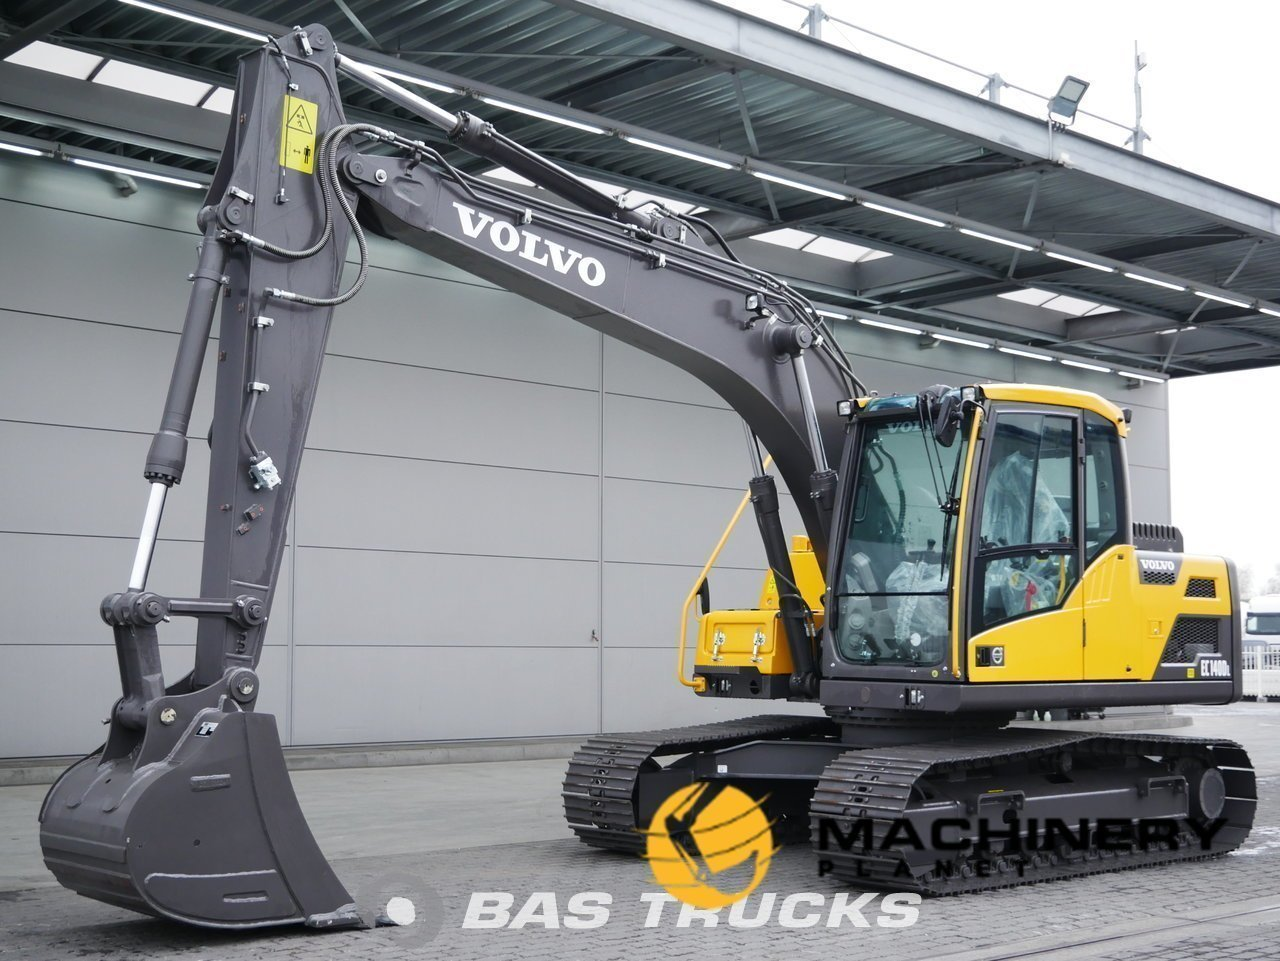 Used-Construction-equipment-Volvo-EC140DL-Track-2018_141856_1-1554100063768_5ca1af5fbb971-1.jpg